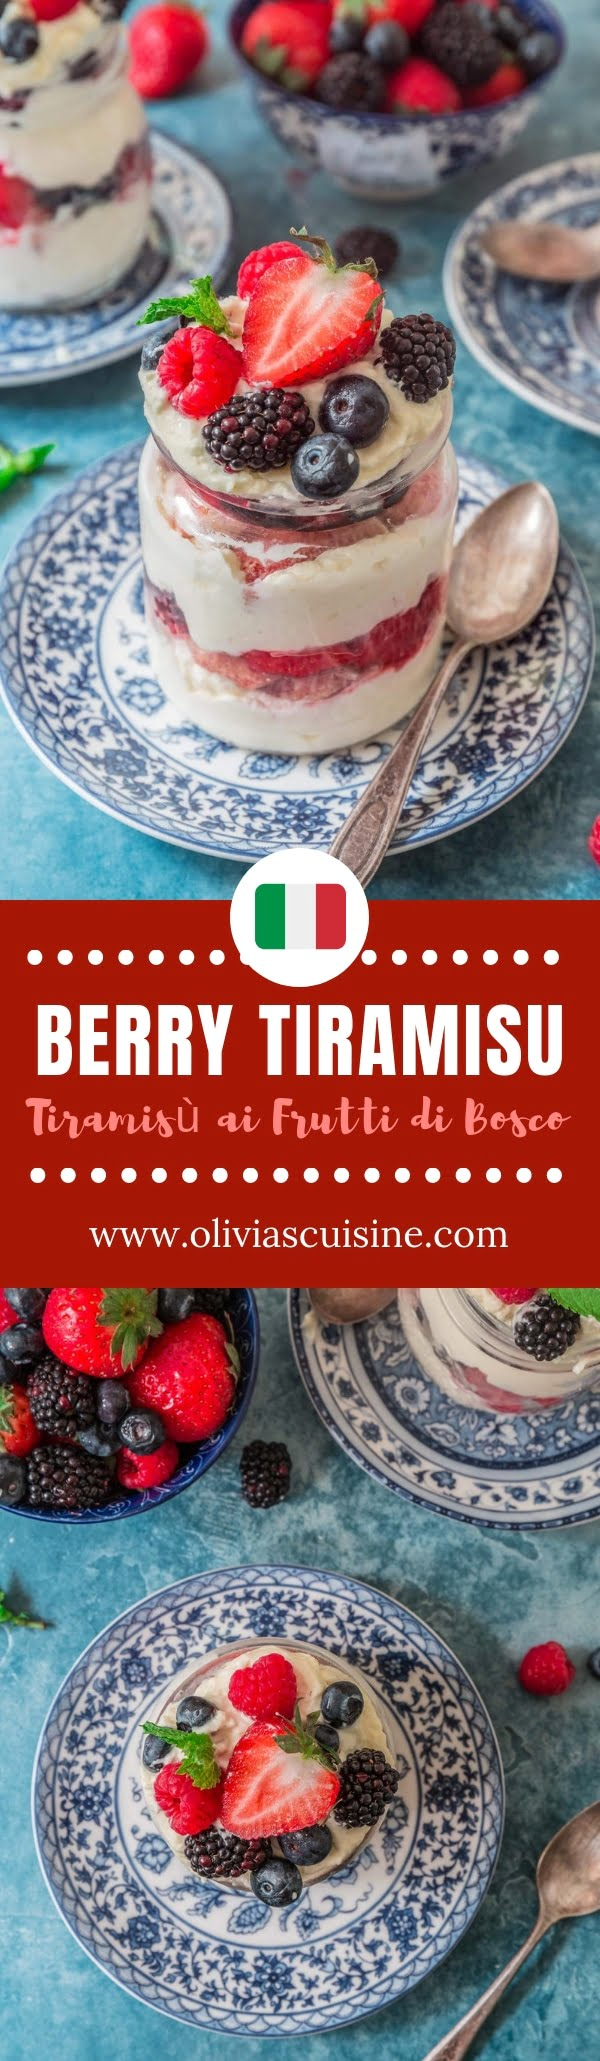 Berry Tiramisu | www.oliviascuisine.com | A summery twist on the classic tiramisù, this Berry Tiramisu (Tiramisù ai Frutti di Bosco) is fresh, beautiful and a great summer send-off. Spiked with Limoncello for a bright, citrus scent, but easily customizable to a non-alcoholic version. #berrytiramisu #tiramisu #italiandesserts #summerdesserts #mascarpone #berrydesserts